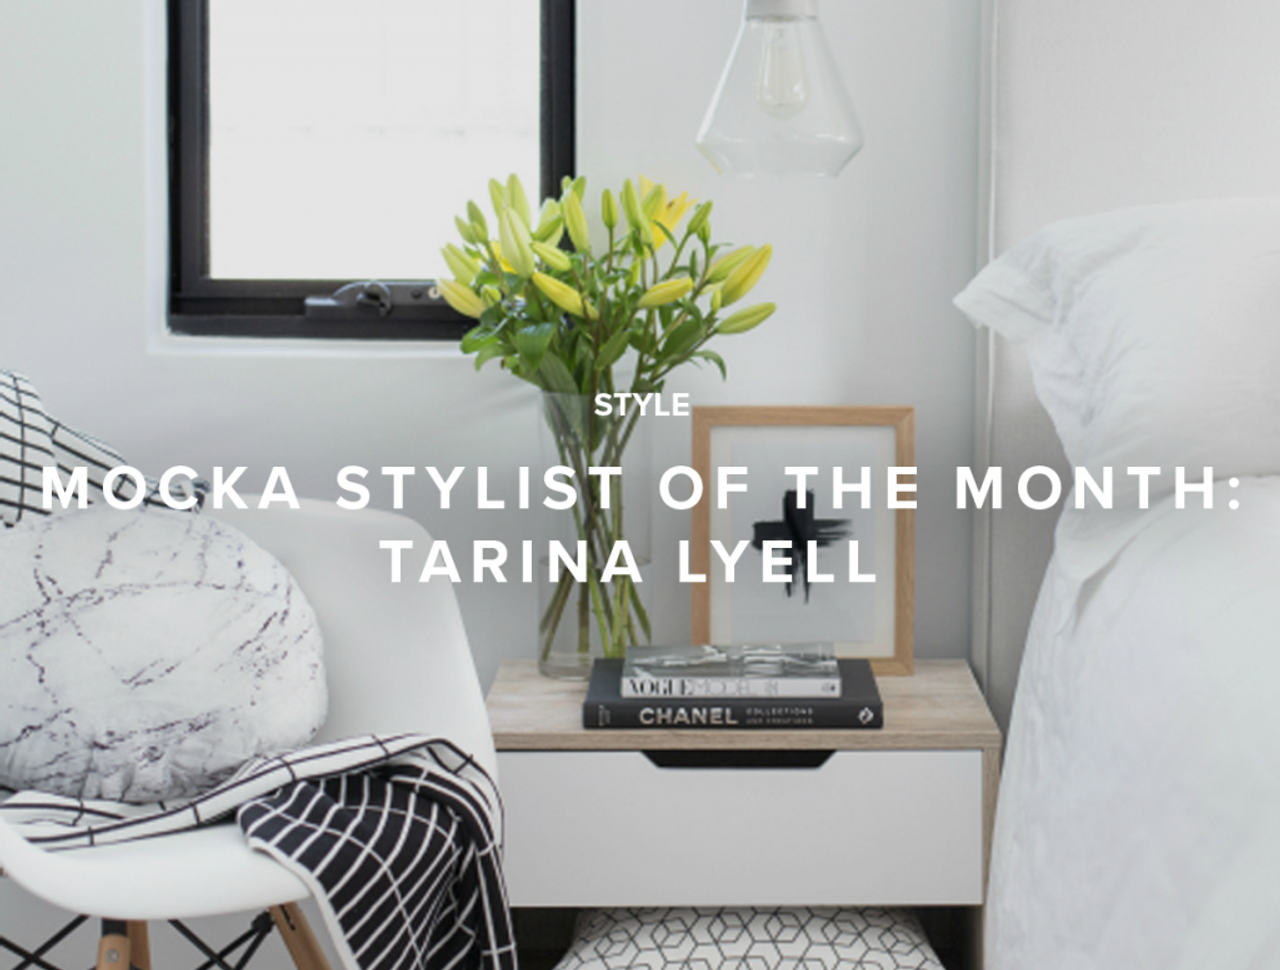 Stylist of the Month - Tarina Lyell